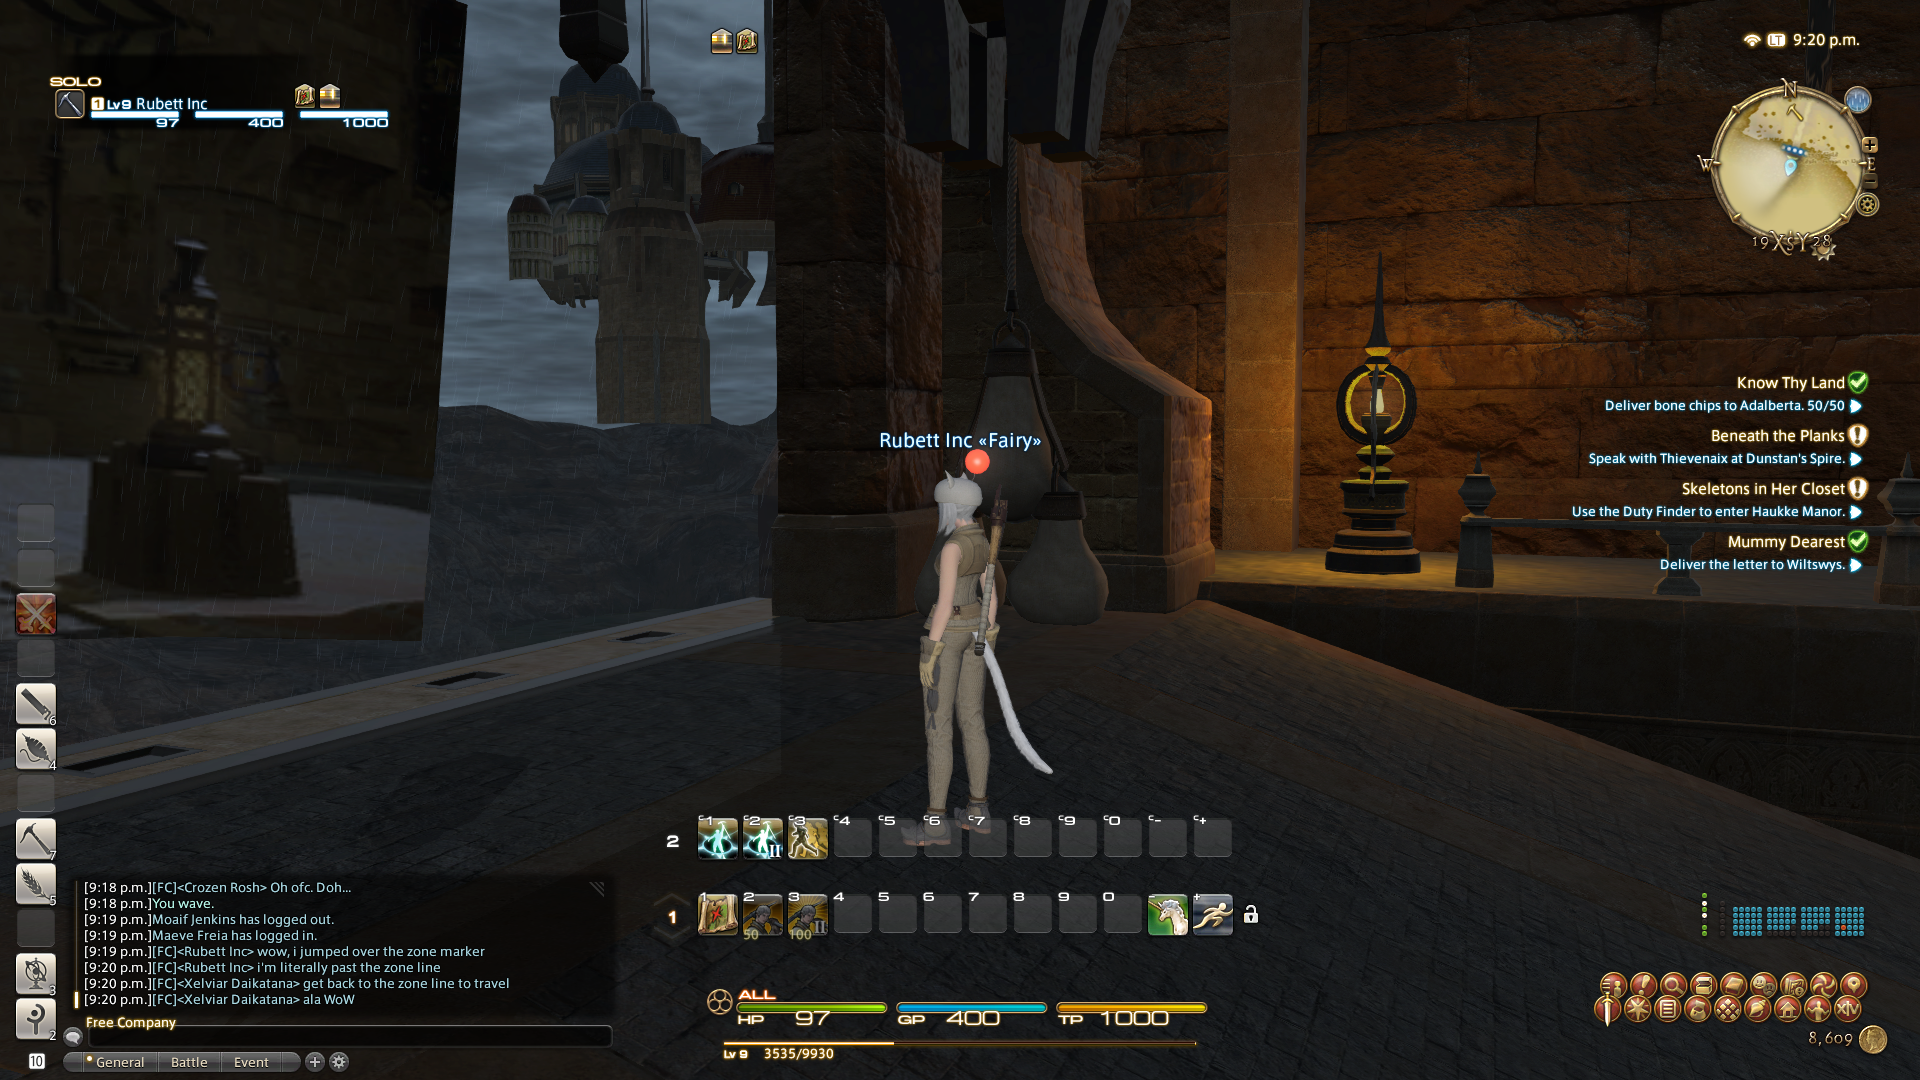 rubett ffxiv scaling them hurts down bucket size file need bigger 1920 stupid reborn screenshot thread realm fantasy 1017 somewhat less with release final